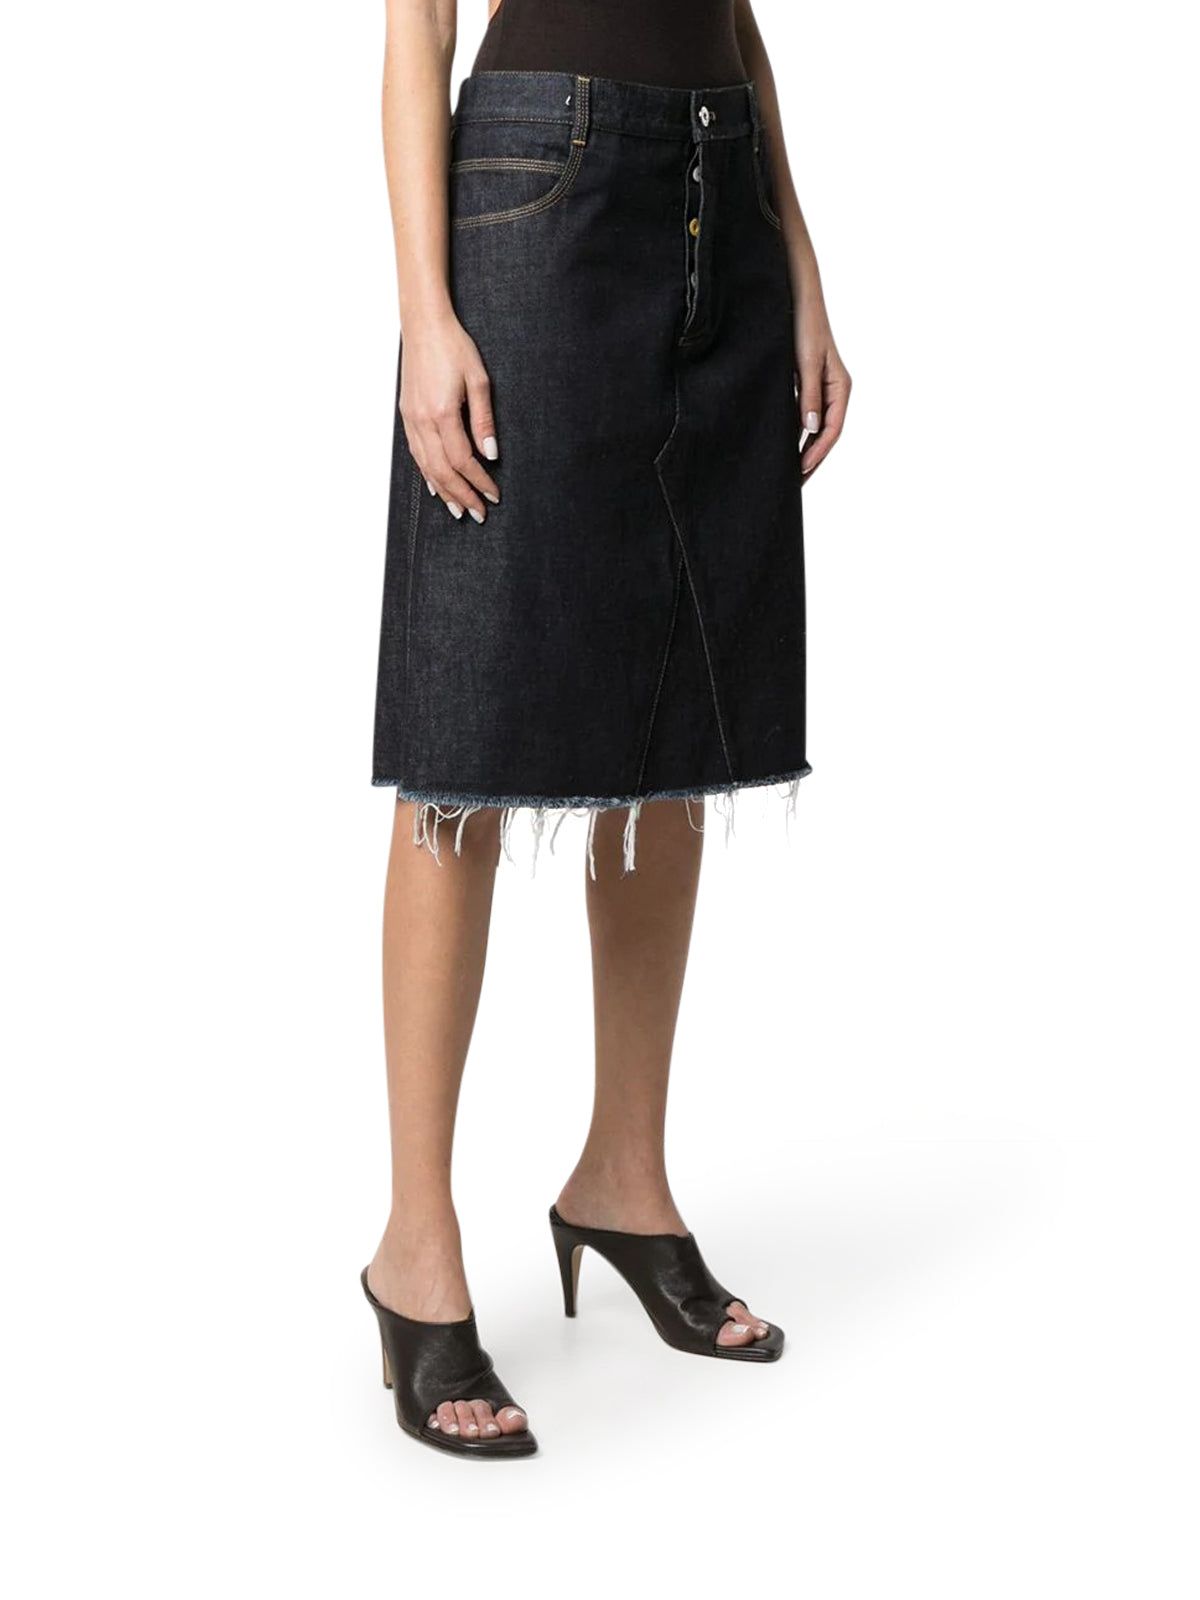 A-line mid-length skirt